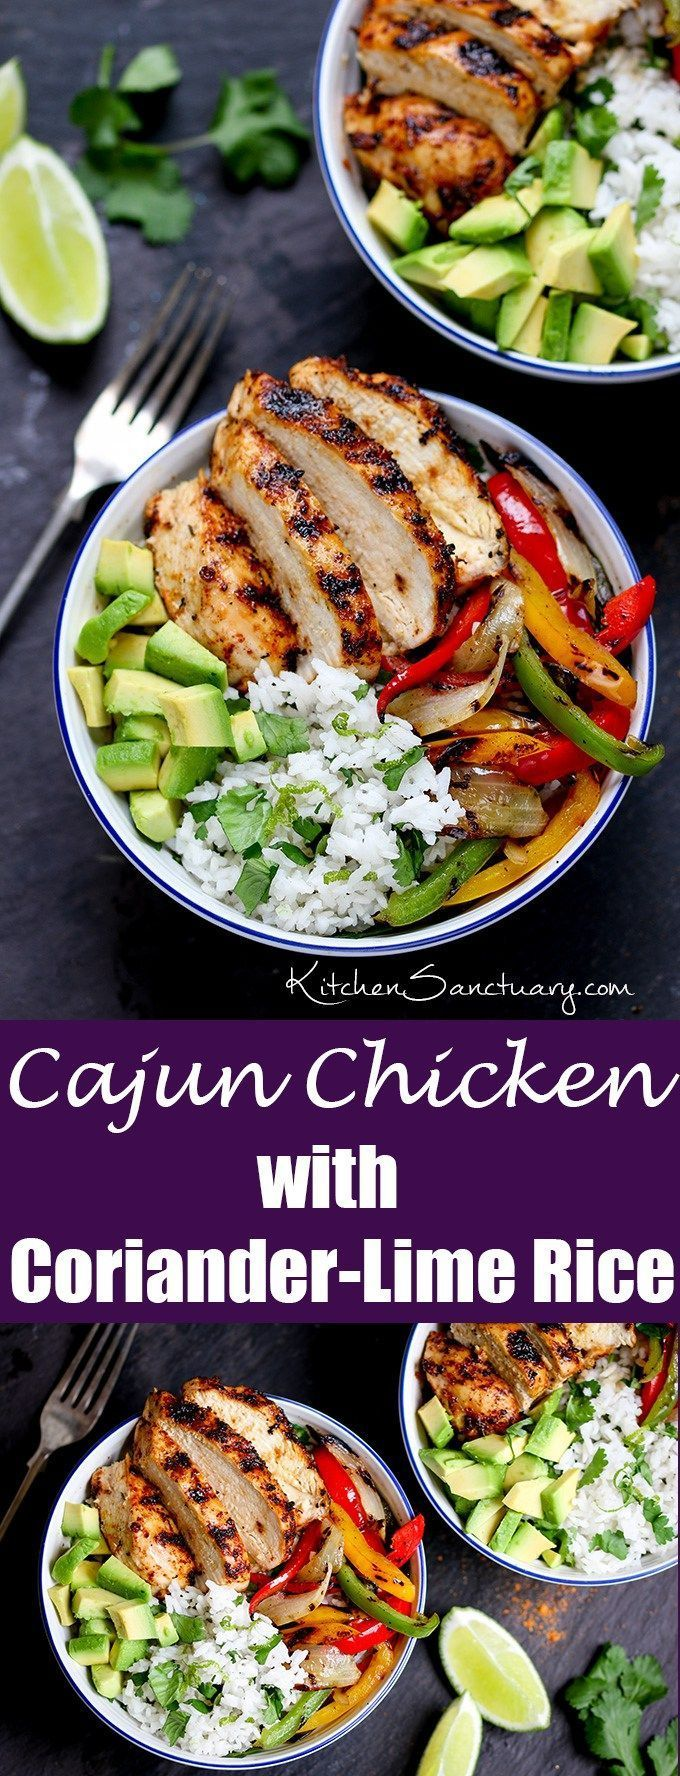 Juicy griddled Cajun #chicken with charred veggies and coriander-lime #rice – ready in 30 minutes. A great weeknight dinner!